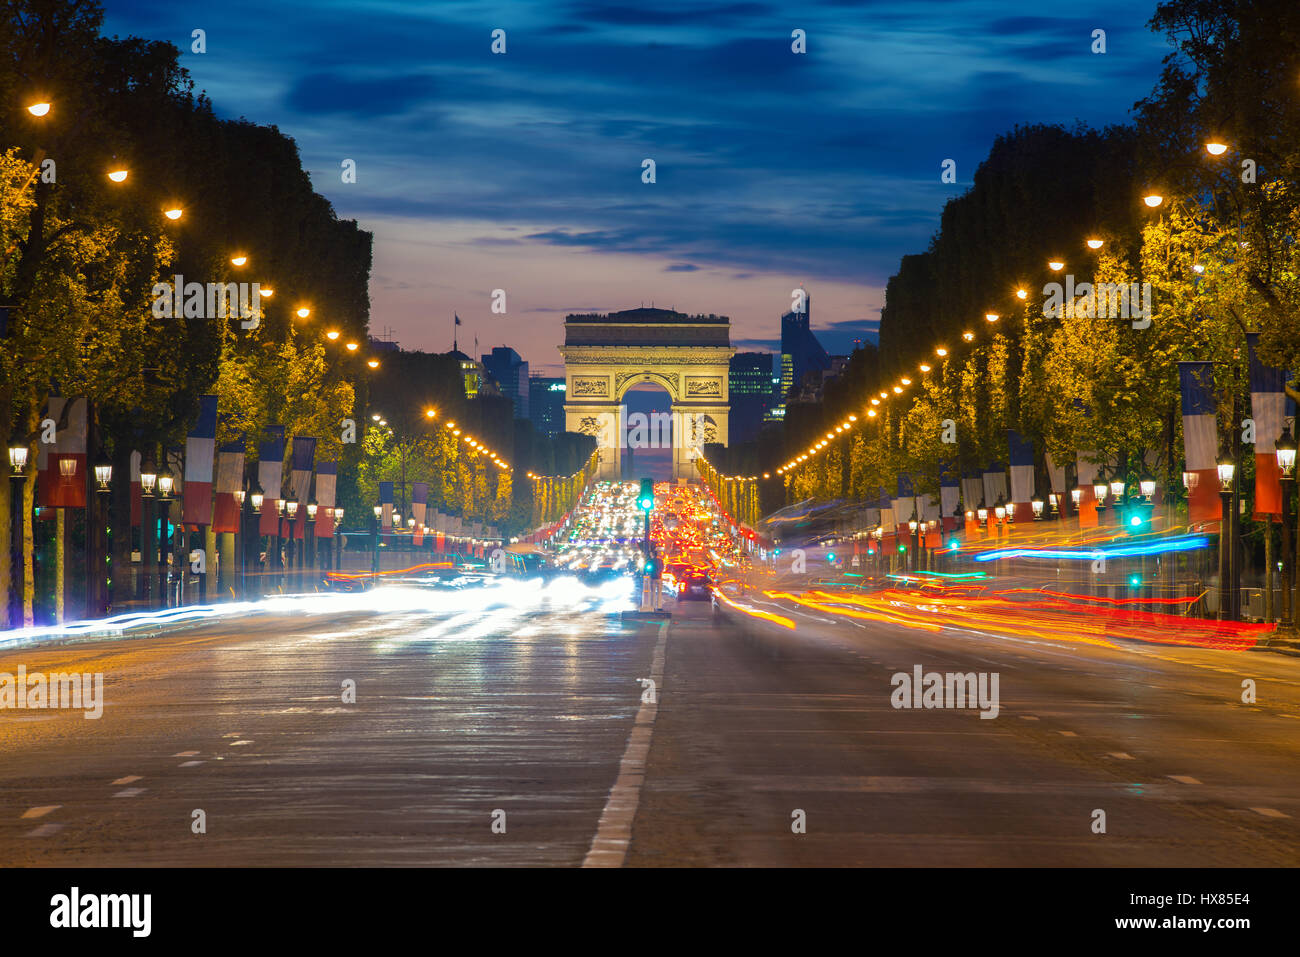 Night view of Paris traffic in Champs-Elysees street and the Arc de Triomphe in Paris, France. - Stock Image